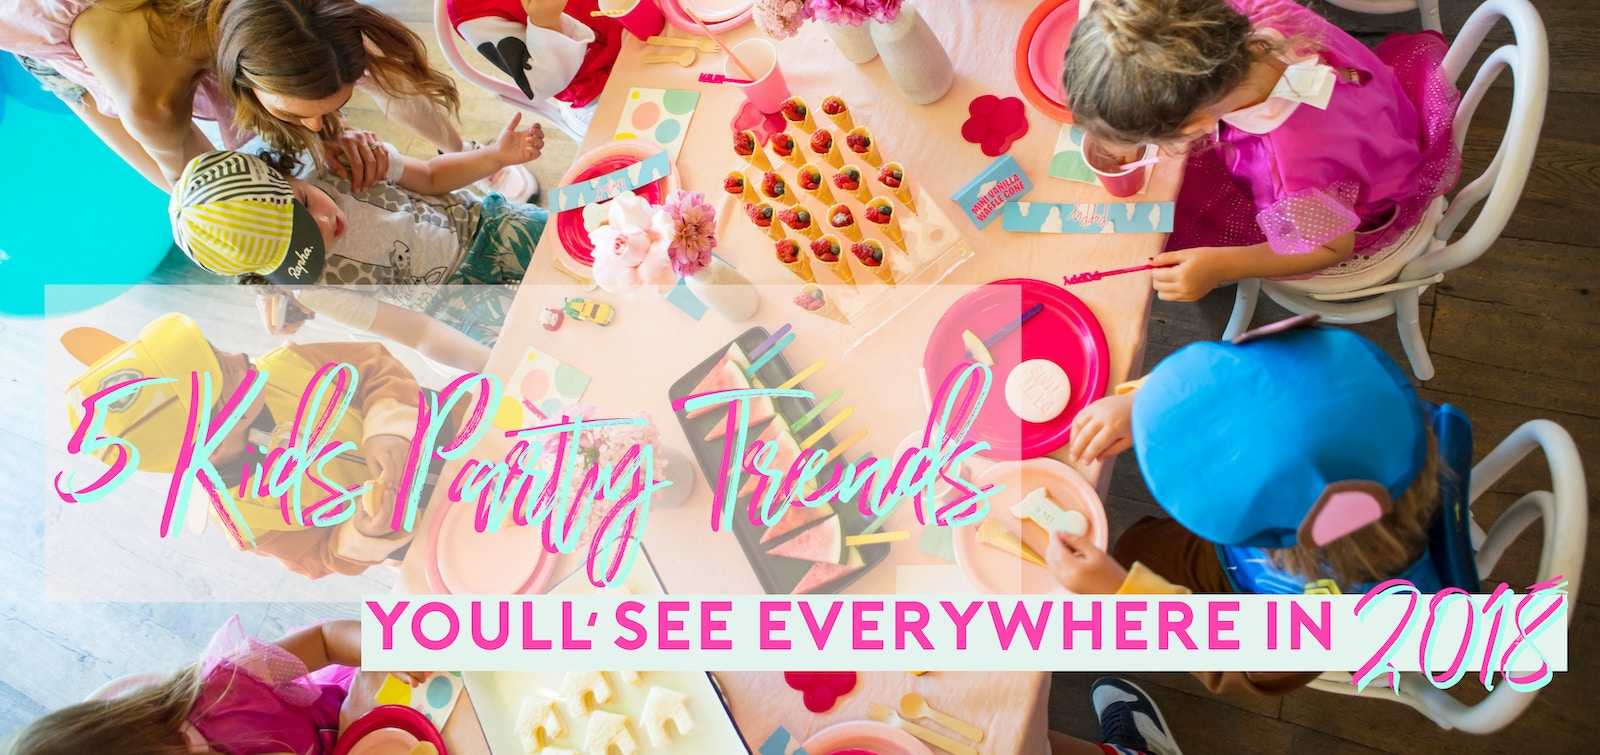 Kids Party Trends 2018 | LENZO